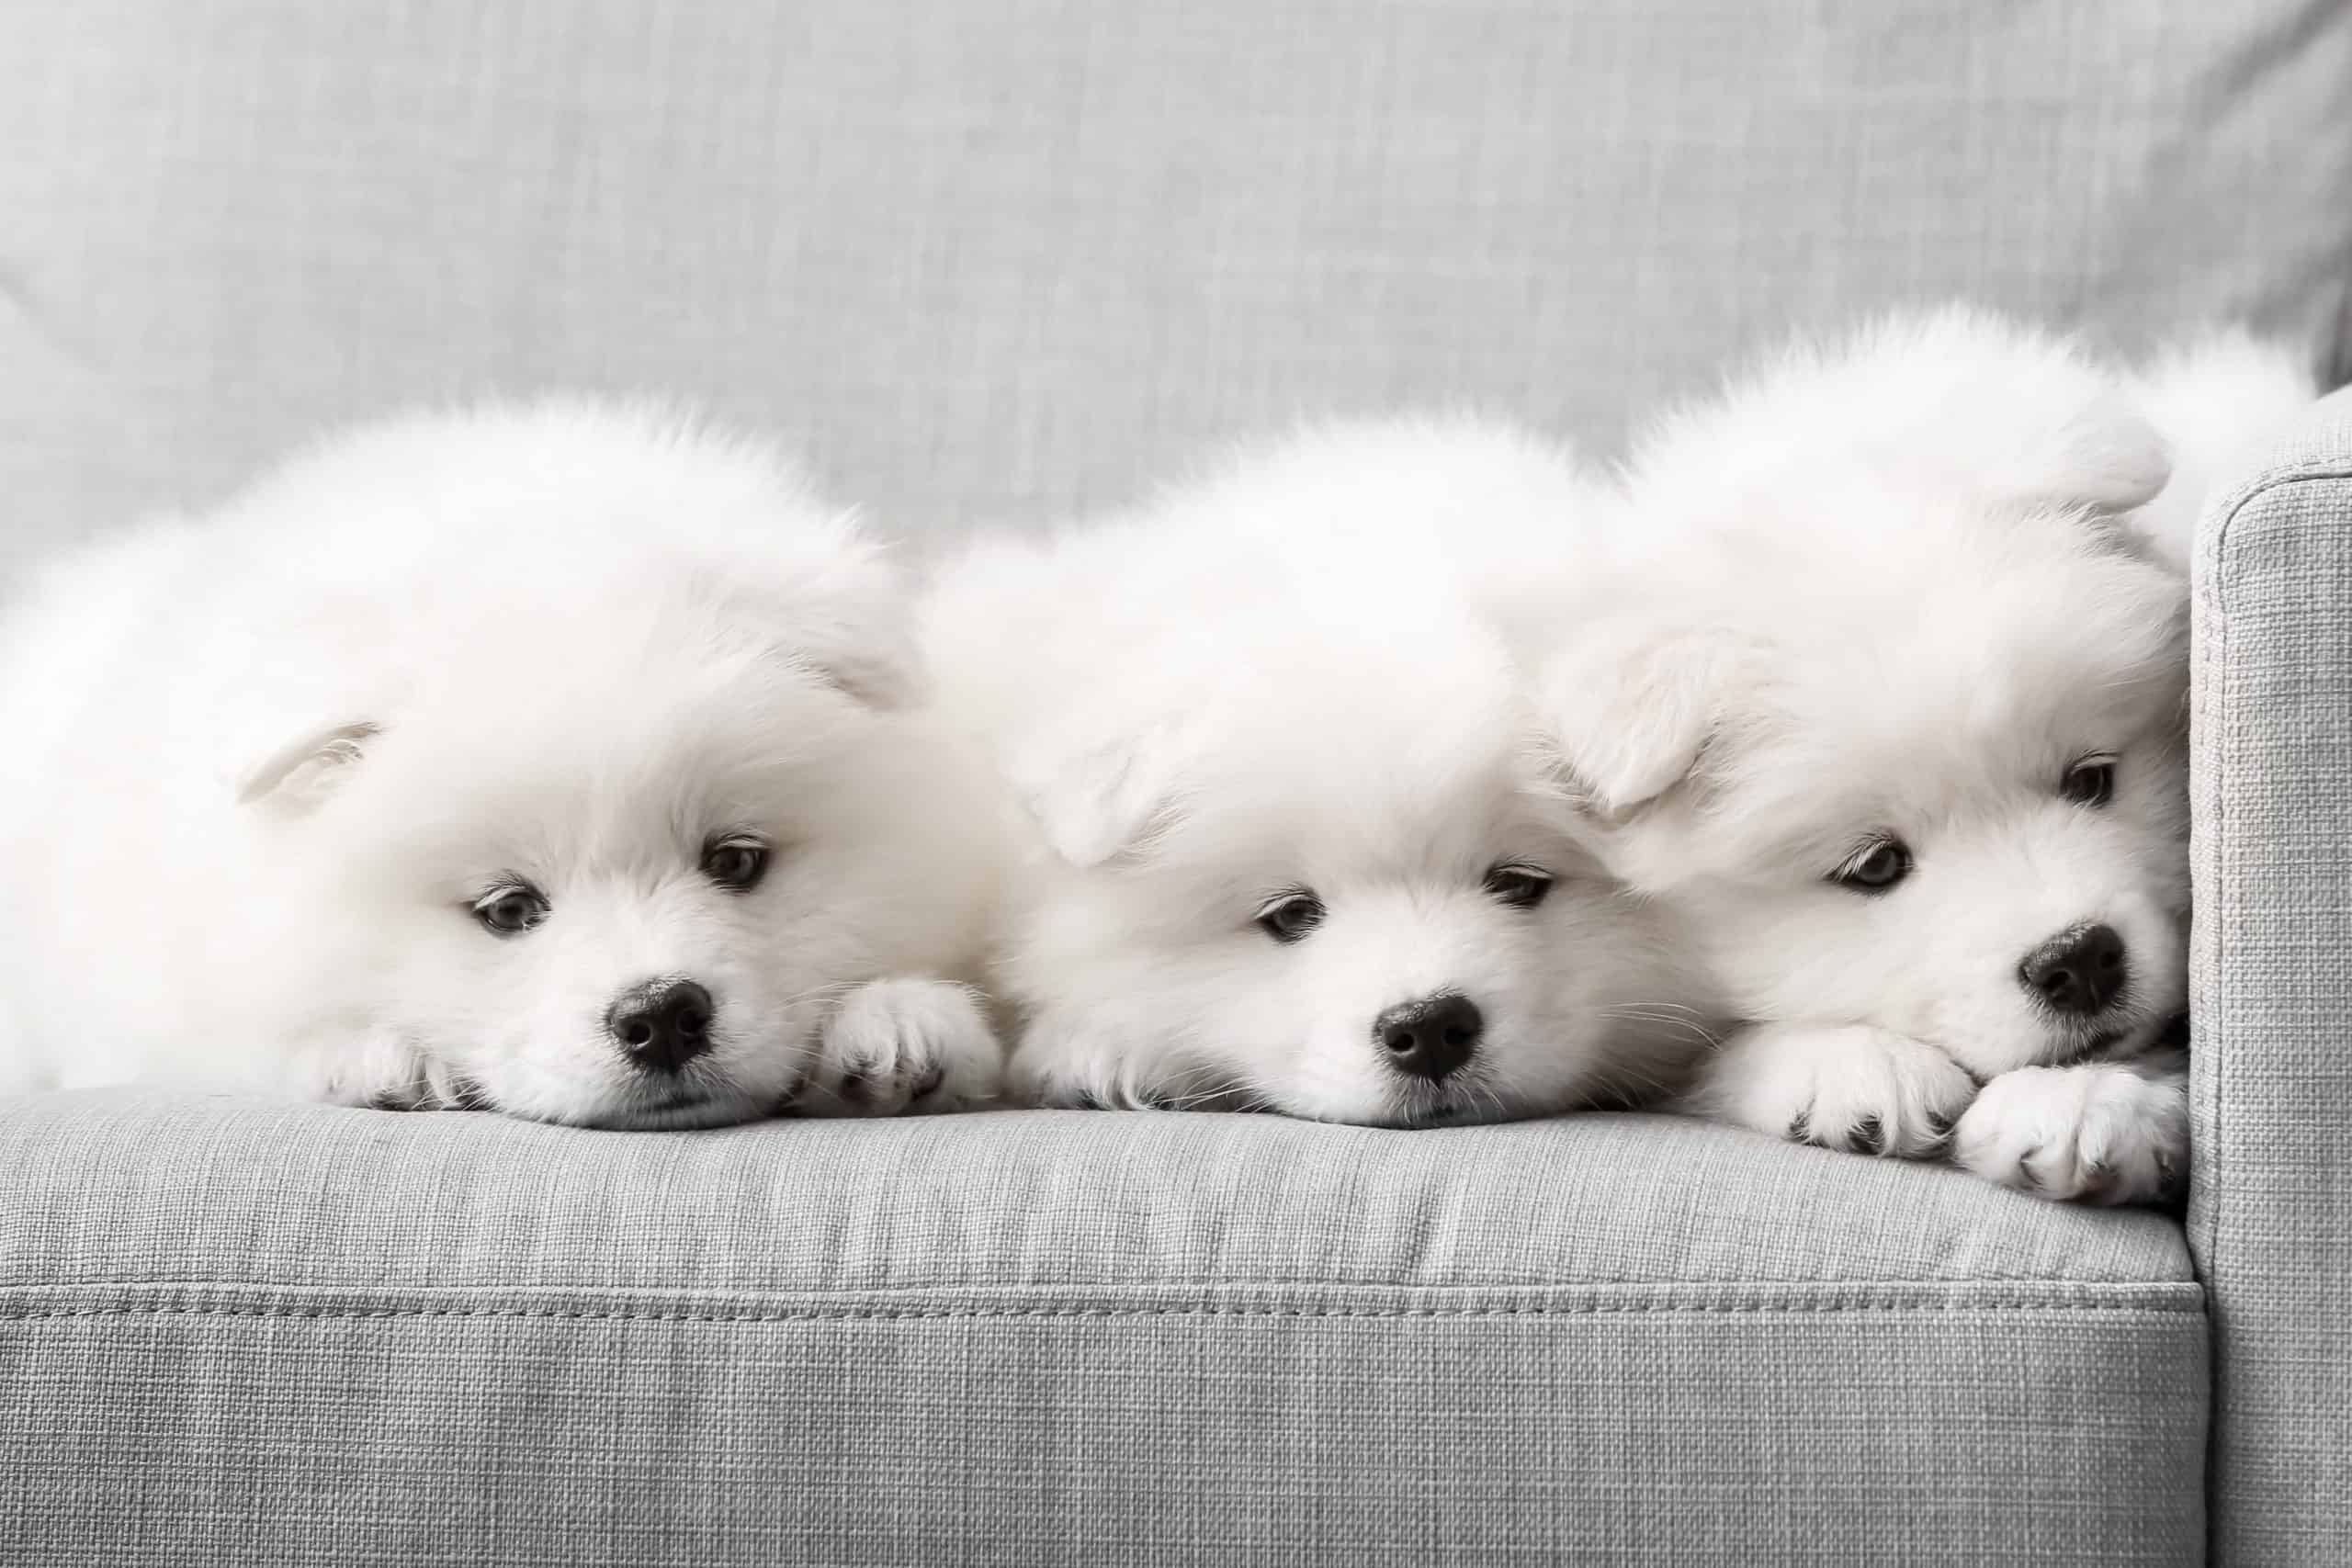 Three Samoyed puppies on a couch. The Samoyed is known for developing extremely close and loyal bonds with its owner.